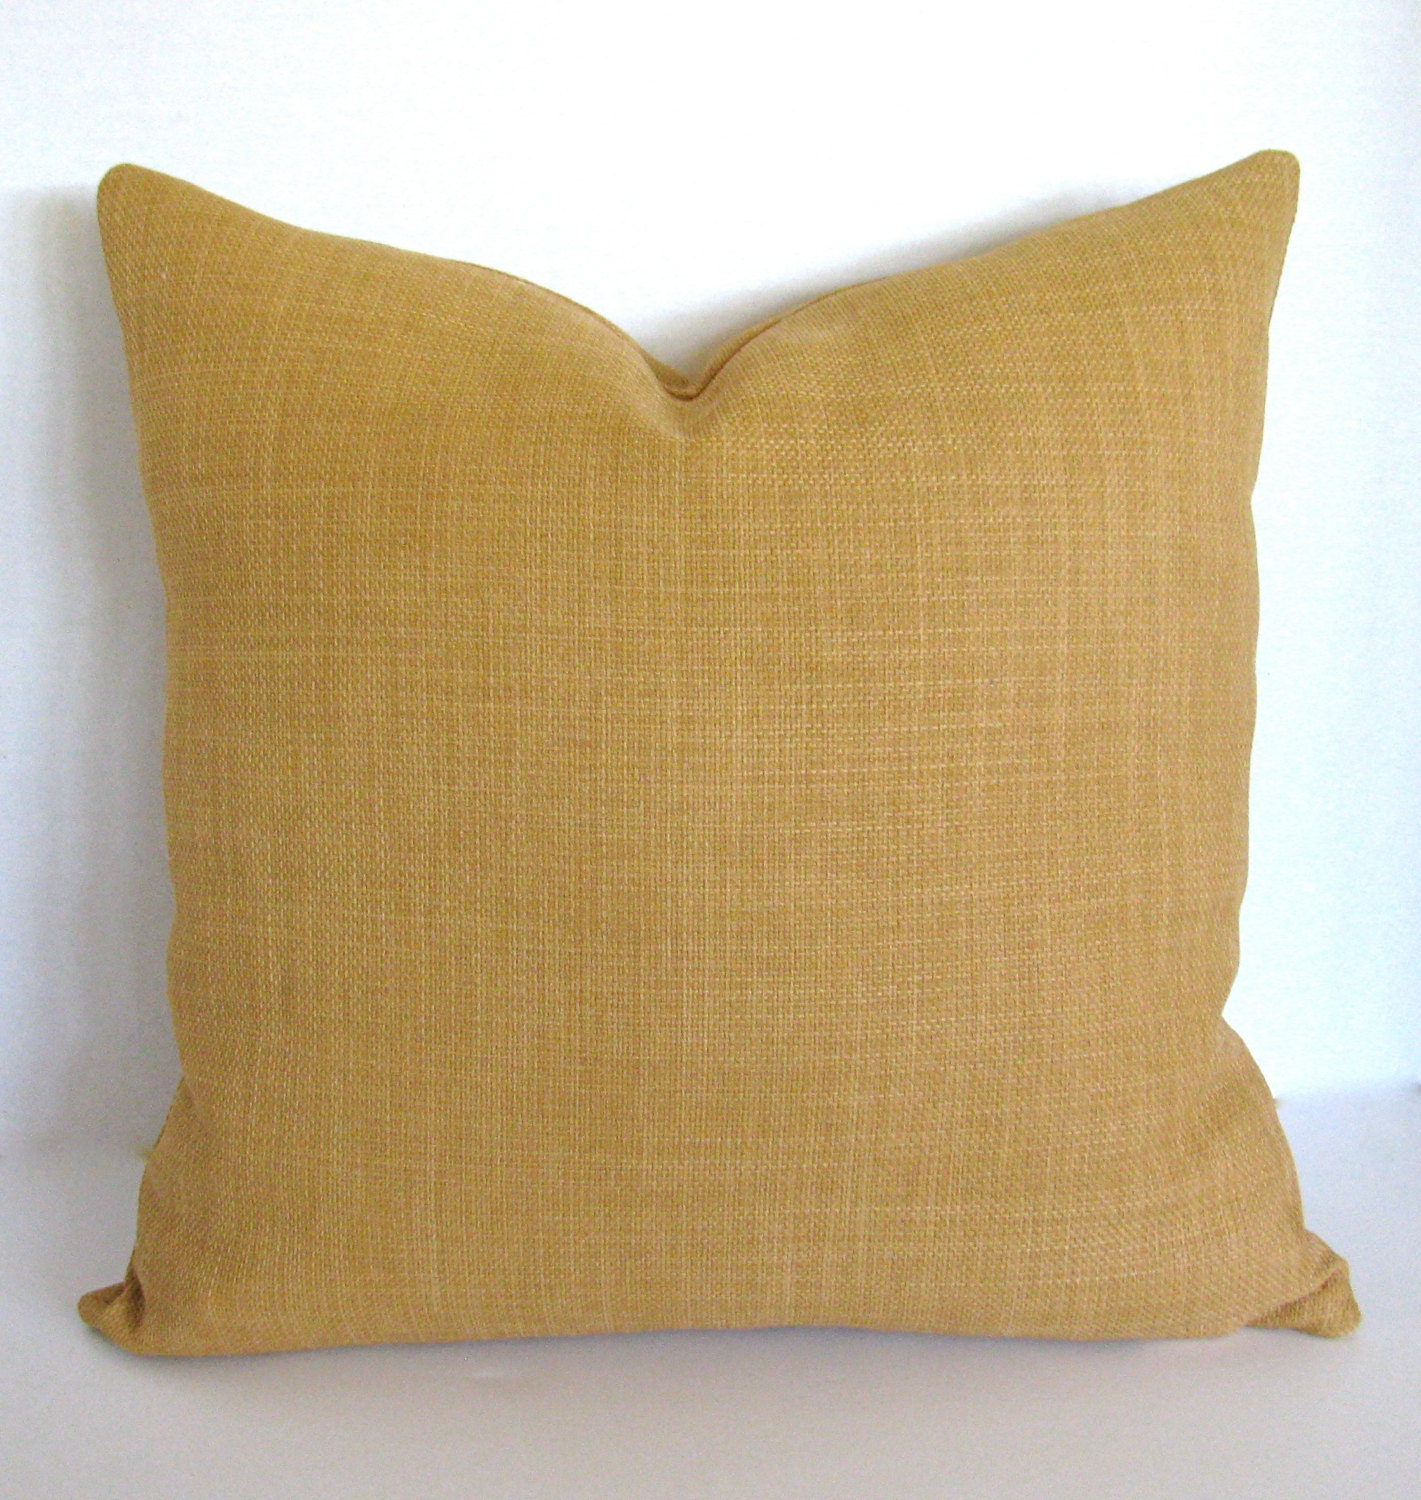 Throw Pillow With Zipper : 18 x 18 Throw Pillow Cover/ Invisible Zipper/ Honey Tan